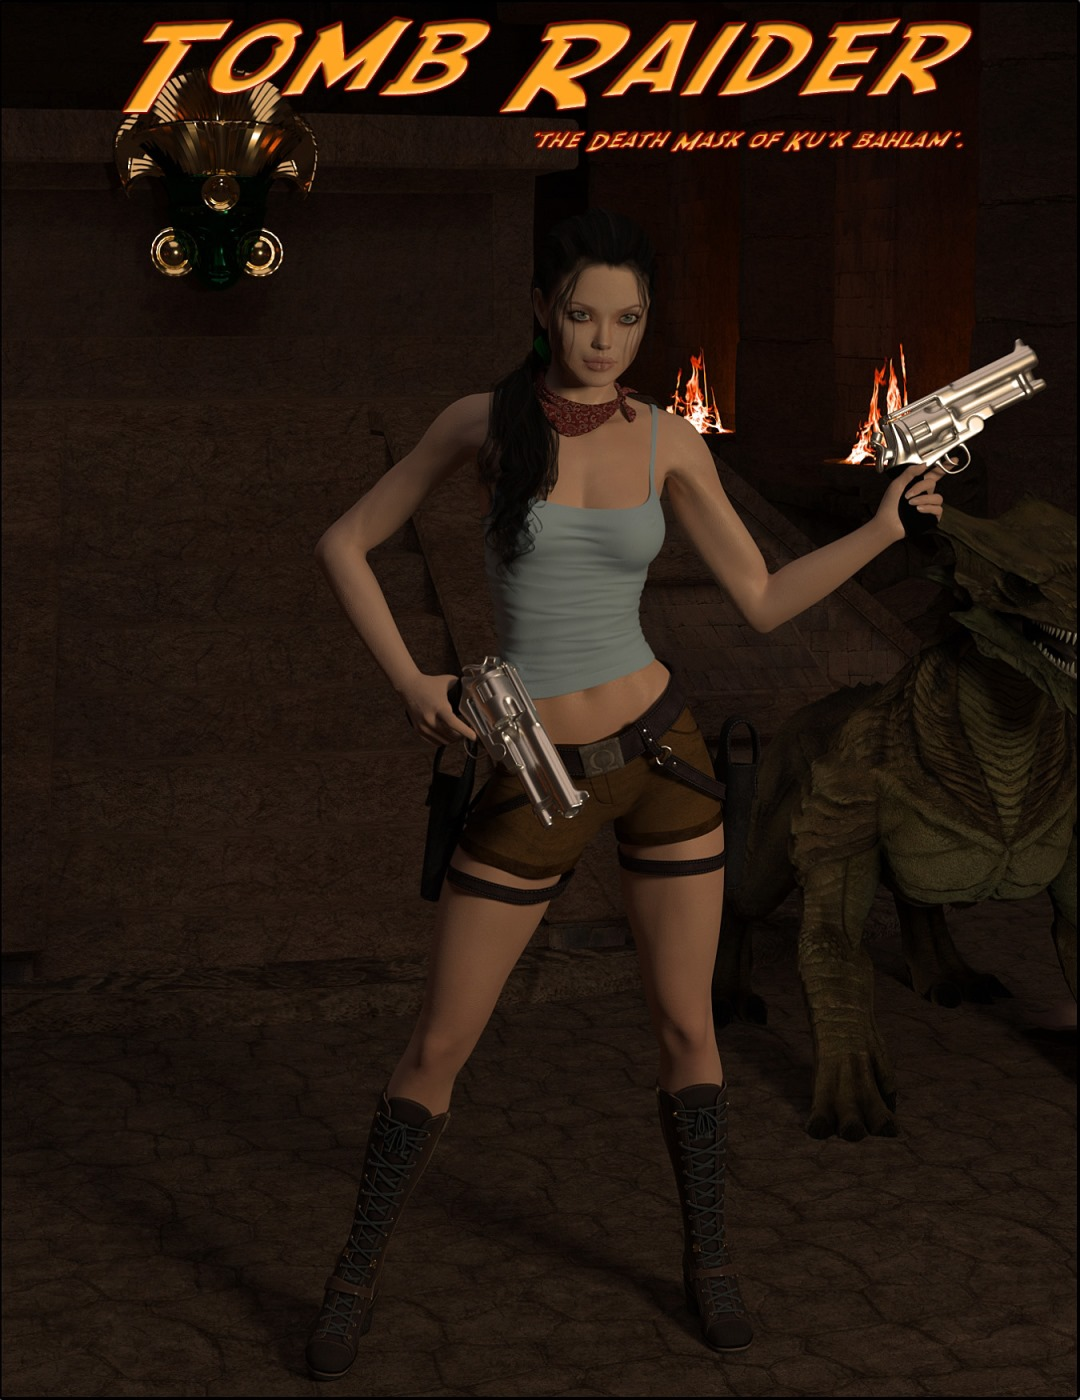 Tomb Raider – Death Mask of 'Ku'k Bahlam' image 1